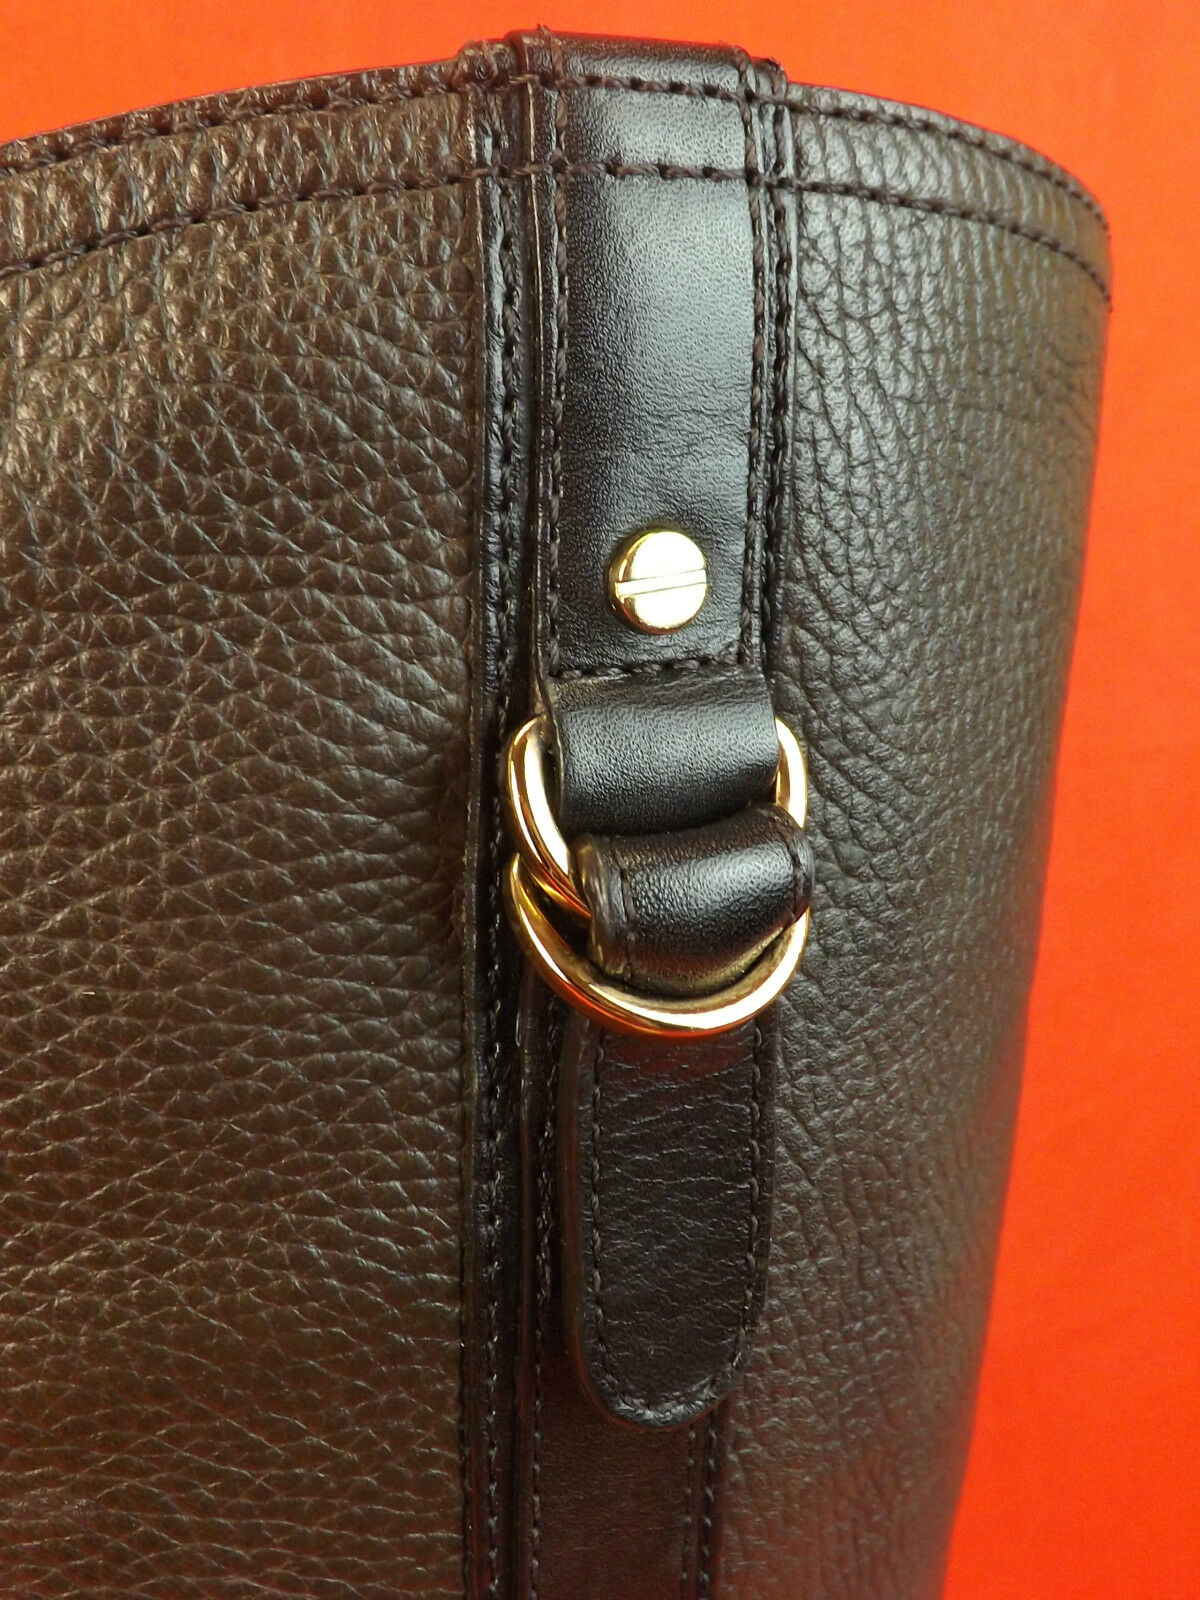 New in Box Tory Burch Burch Burch Noix De Coco Cuir Elina or Reva Tall Riding Belted Bottes 9.5  495 128896